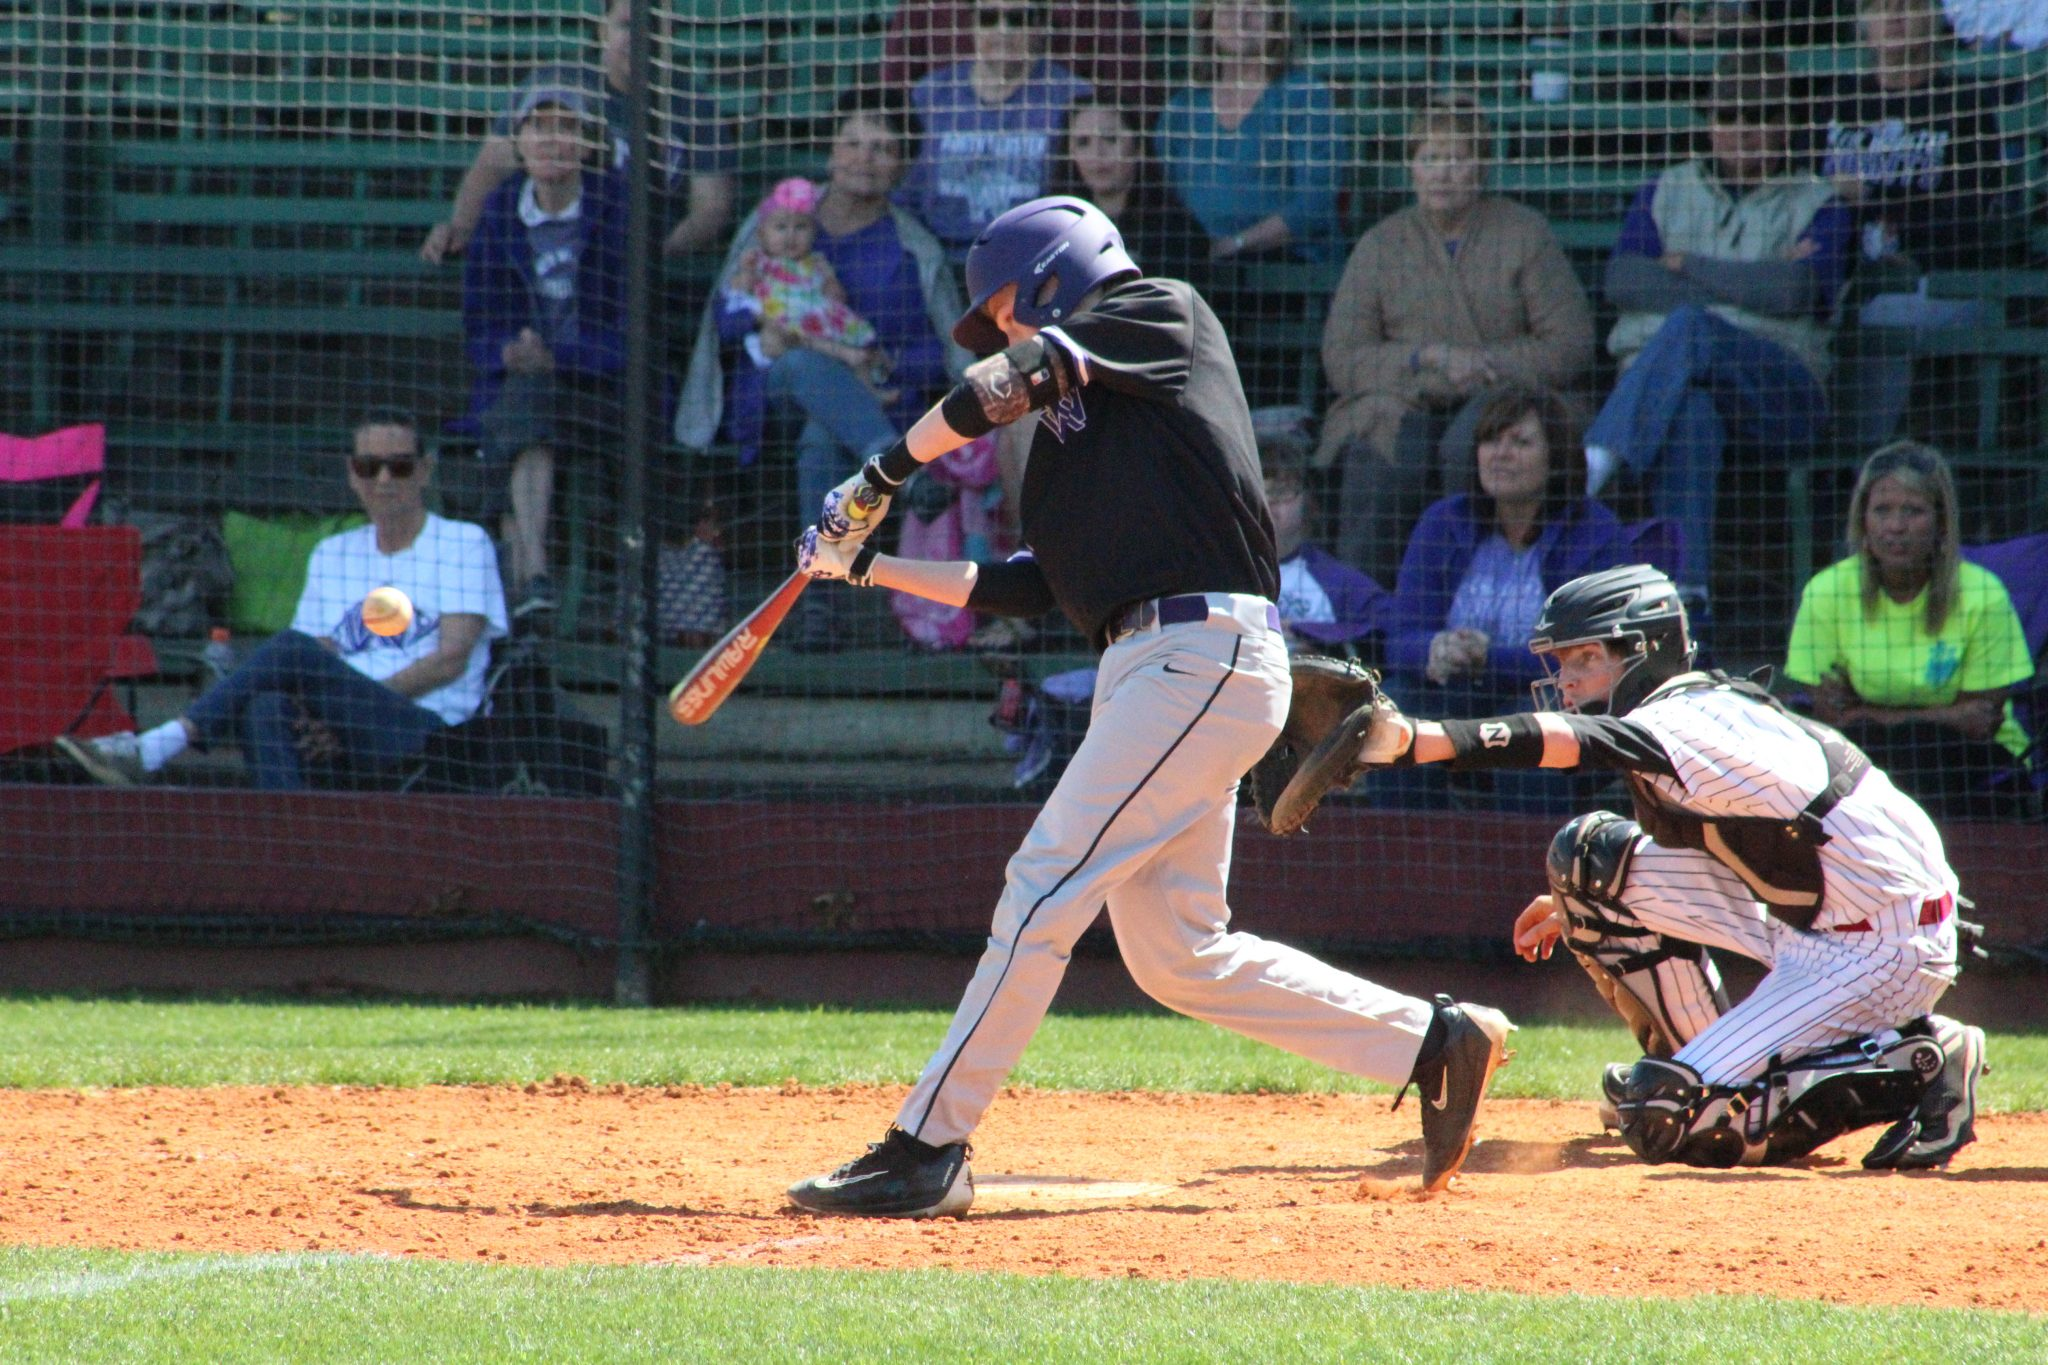 Mourad pitches Glenbrook past Franklin in recreation one